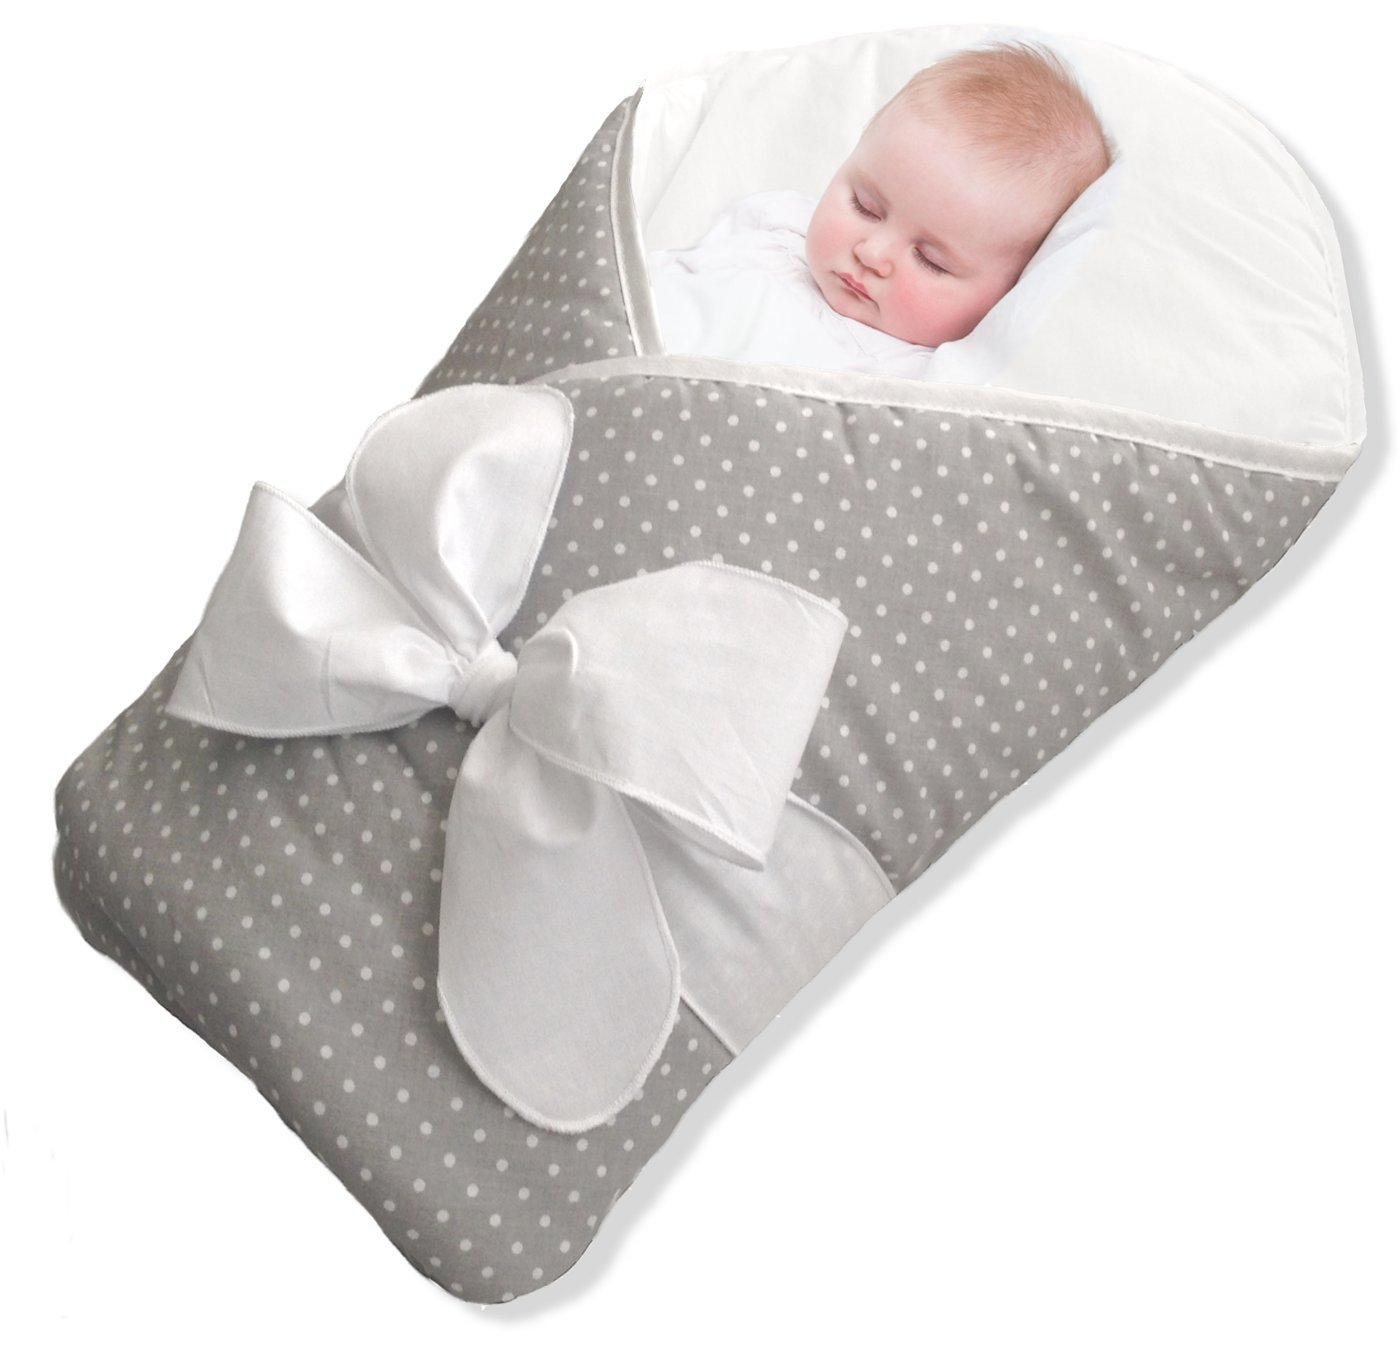 BundleBee Baby Wrap/Swaddle/Blanket, Feather Light/Grey Polka Dot, 0-4 Months BBWRAPG001